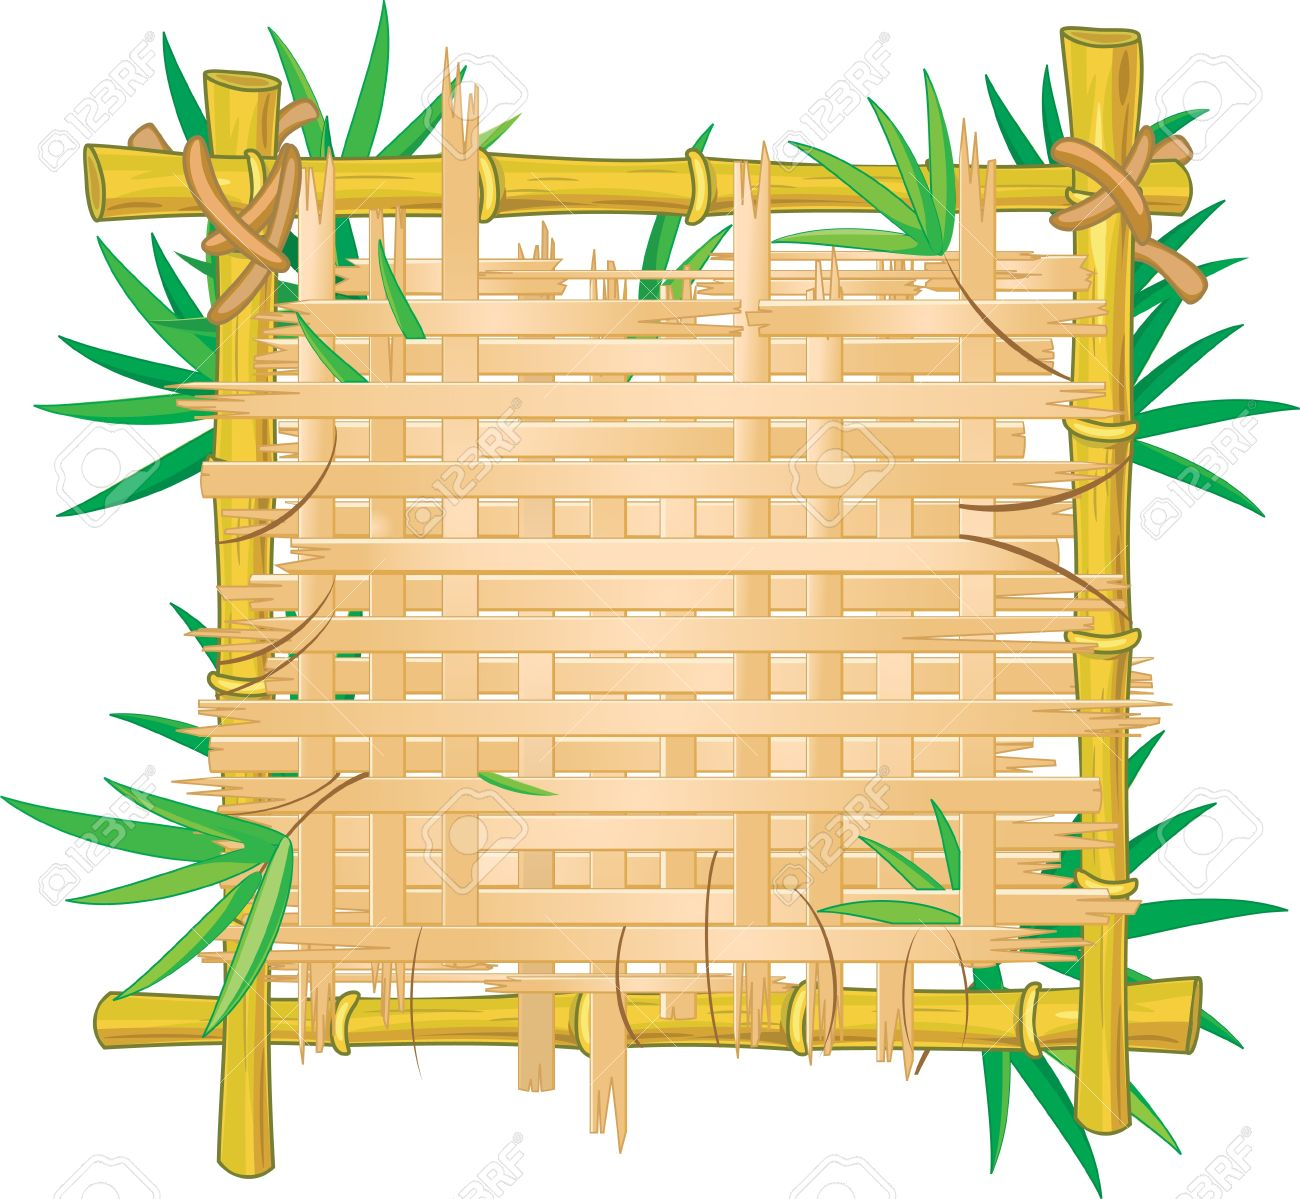 Bamboo frame clipart.